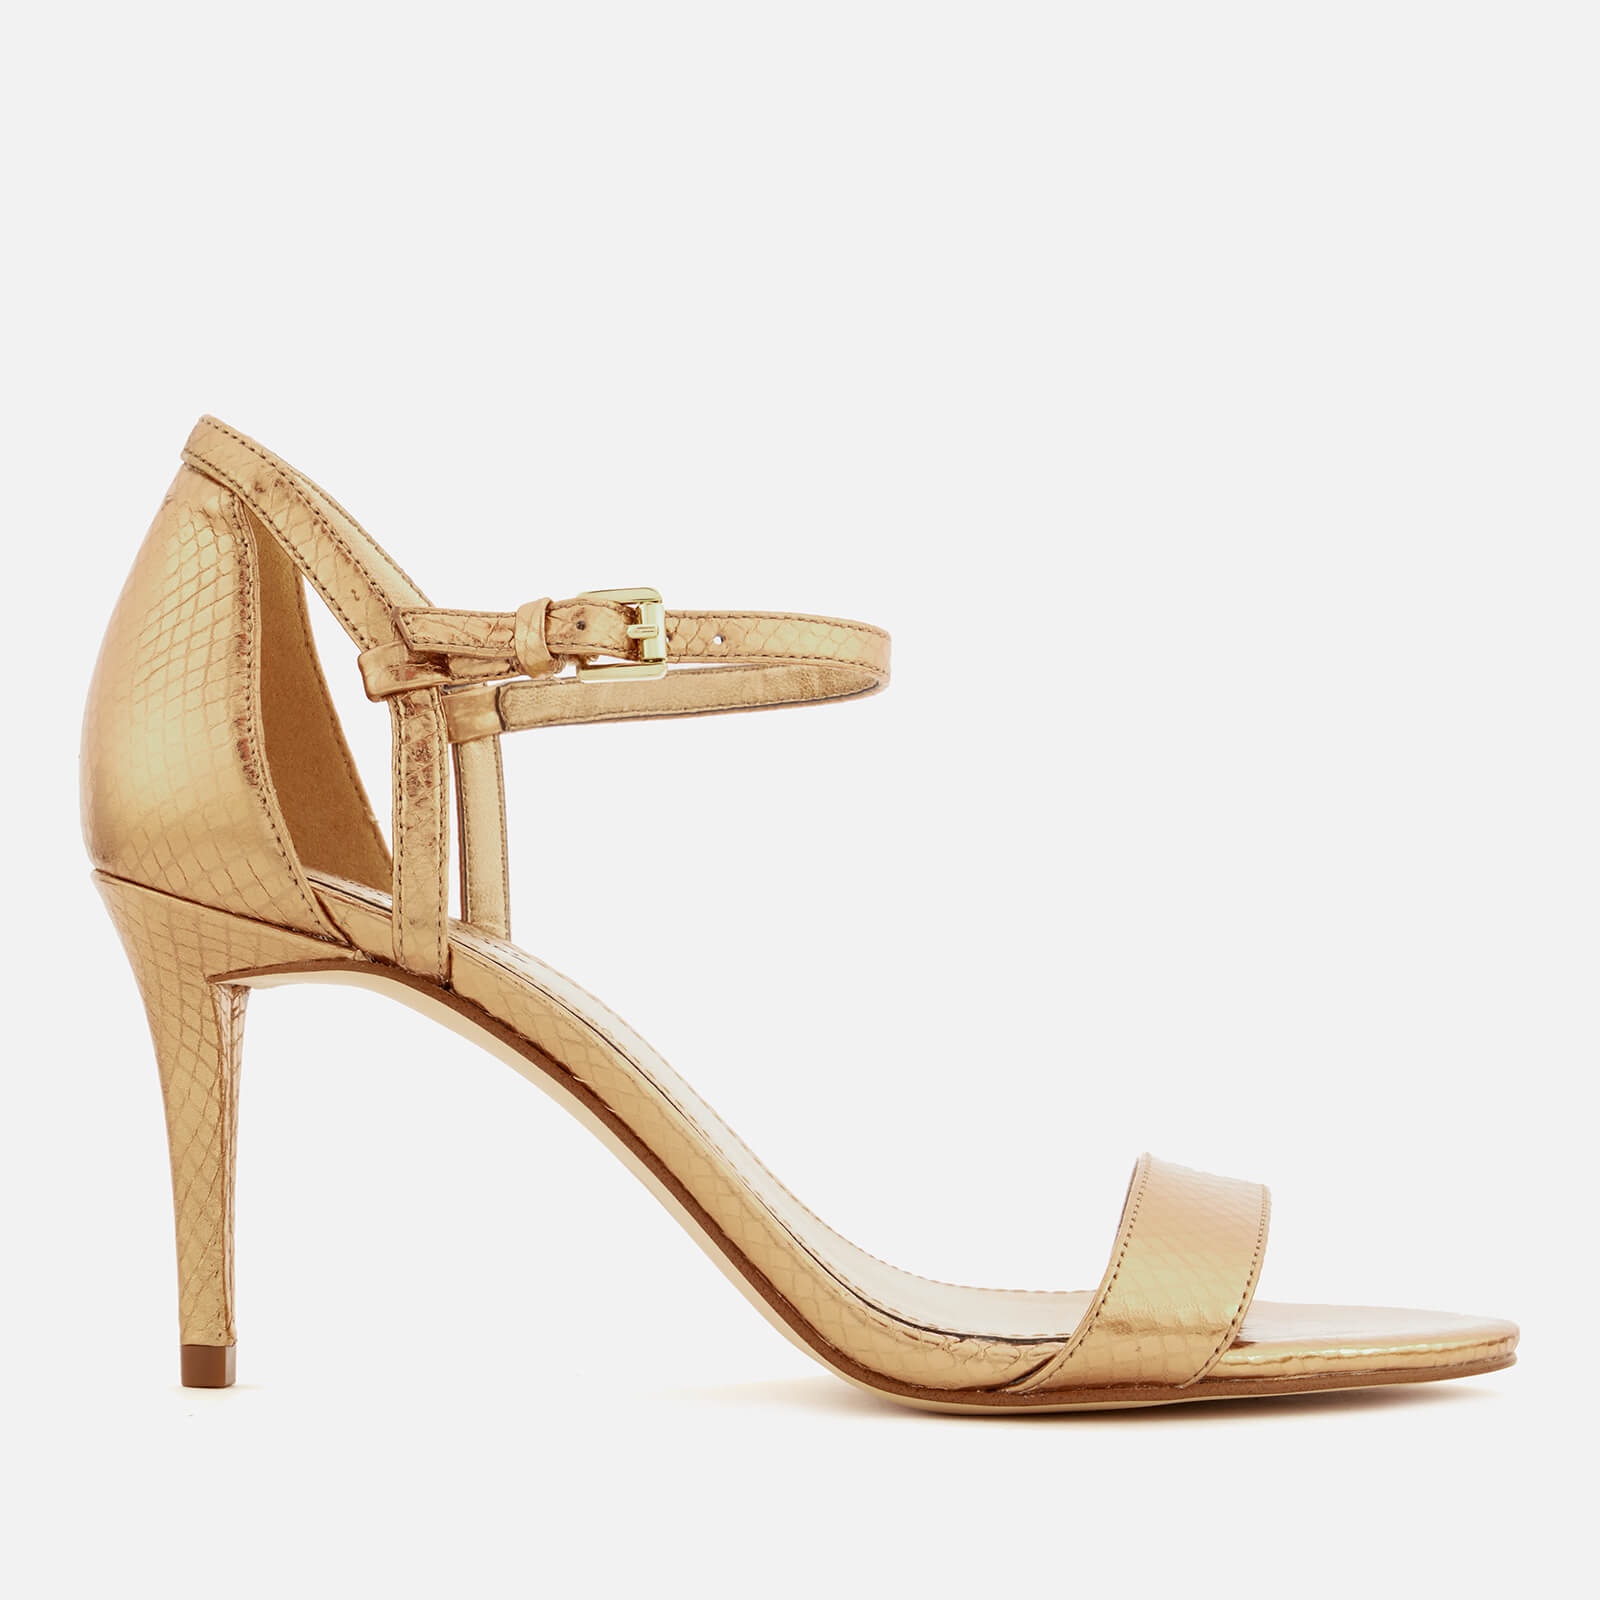 08c7b68067c68 MICHAEL MICHAEL KORS Women's Simone Shiny Metallic Snake Barely There  Heeled Sandals - Antique Gold Womens Footwear | TheHut.com